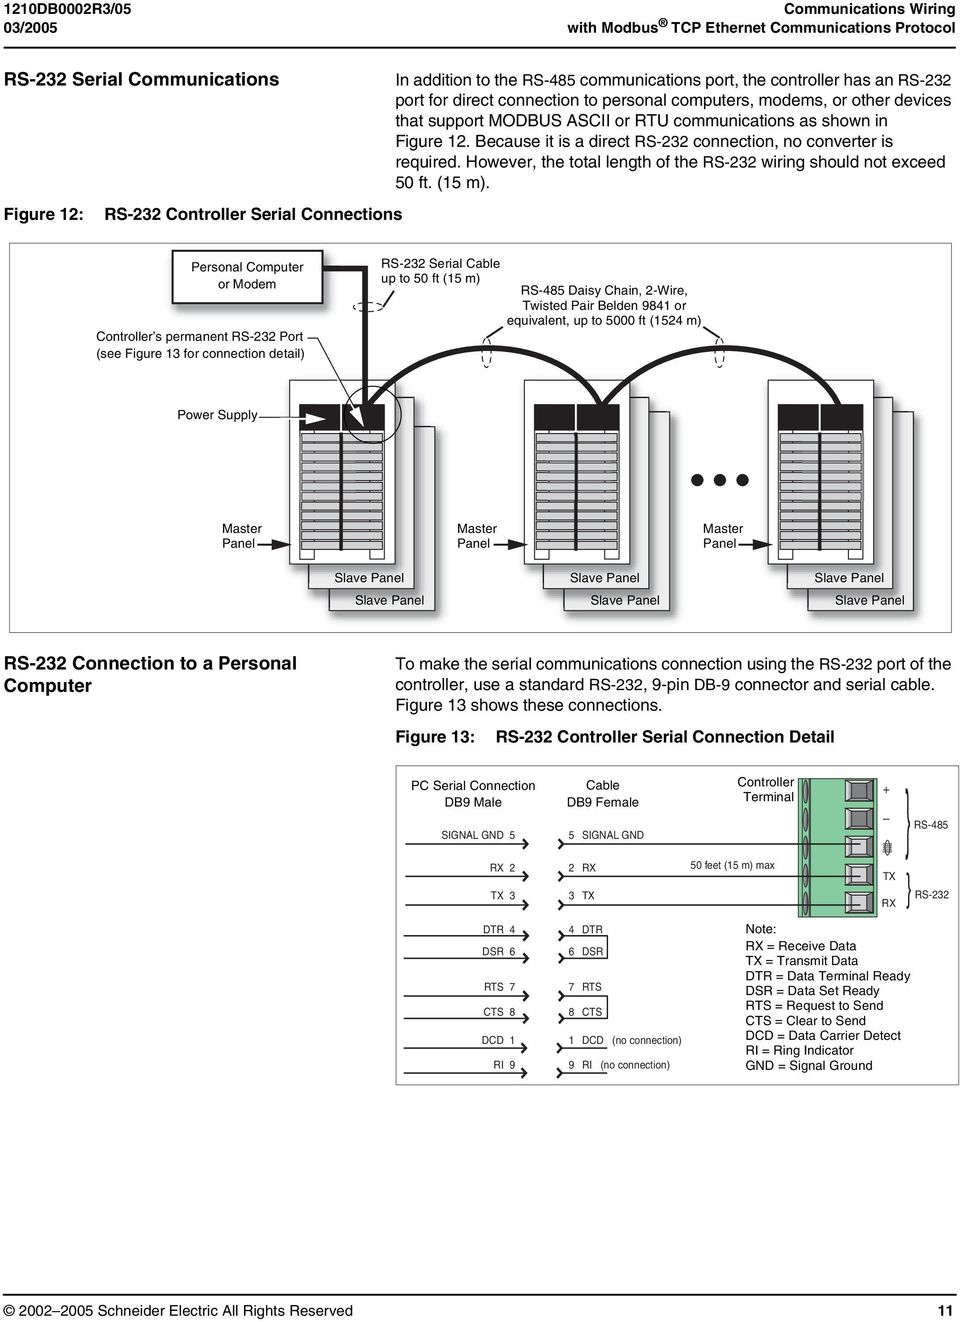 Data Bulletin Communications Wiring For Powerlink G3 Systems Class To Rj45 Rs232 Serial Cable Pinout On Db9 Ethernet Adapter Diagram Because It Is A Direct Rs 232 Connection No Converter Required However